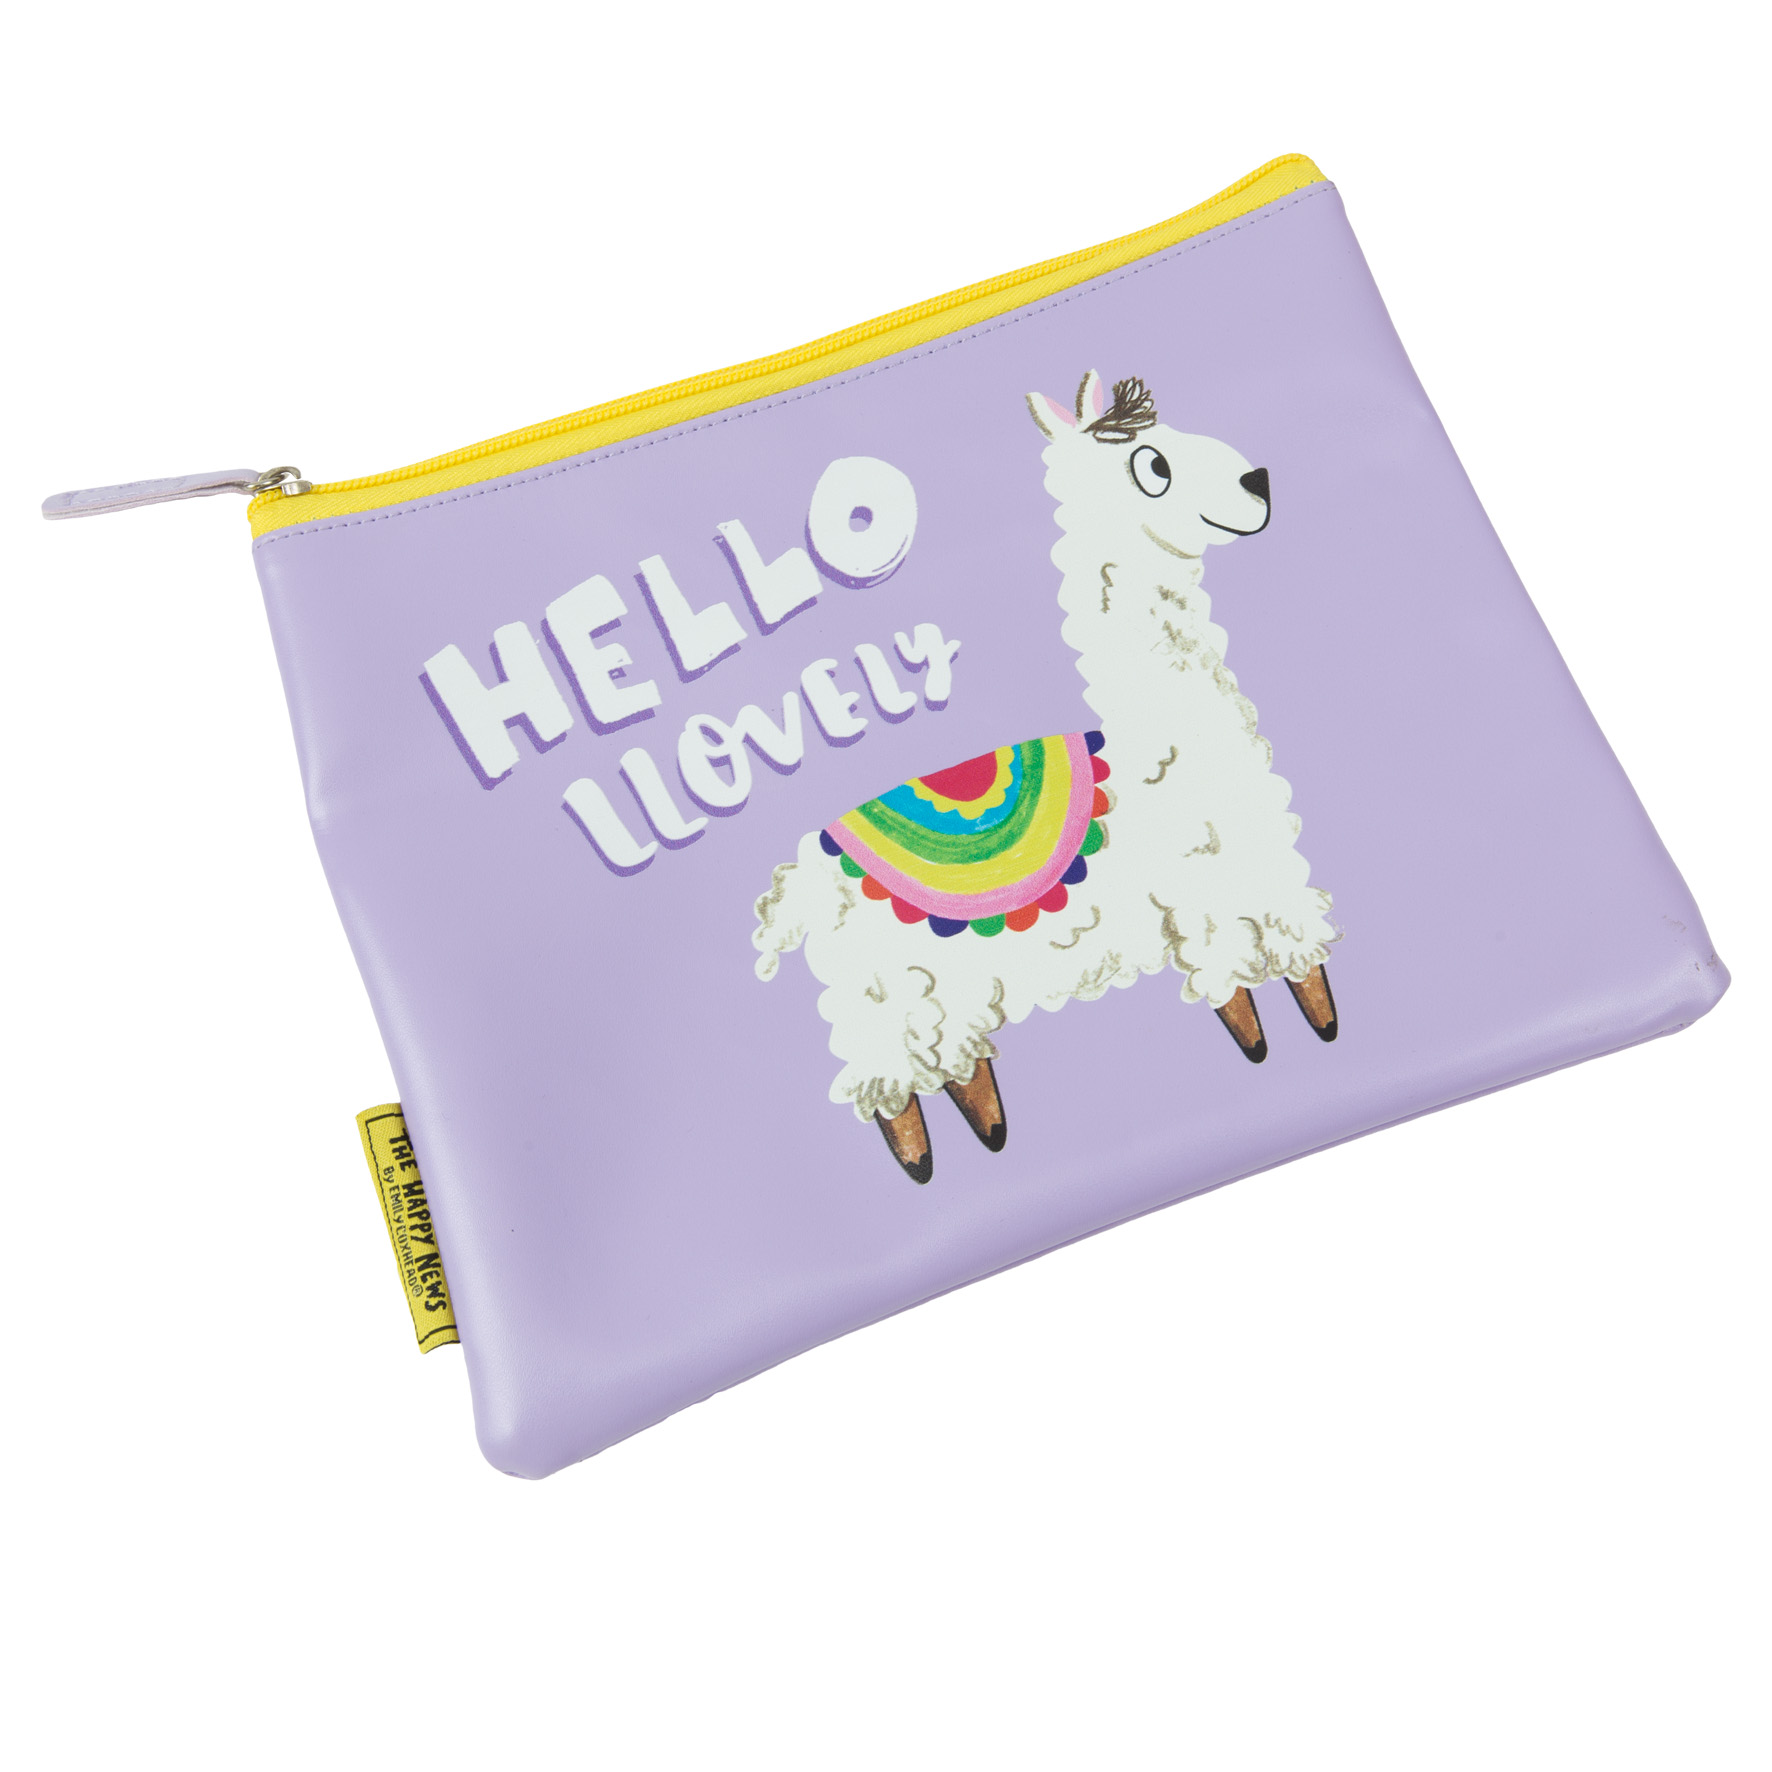 The Happy News Llama Make Up bag by Emily Coxhead